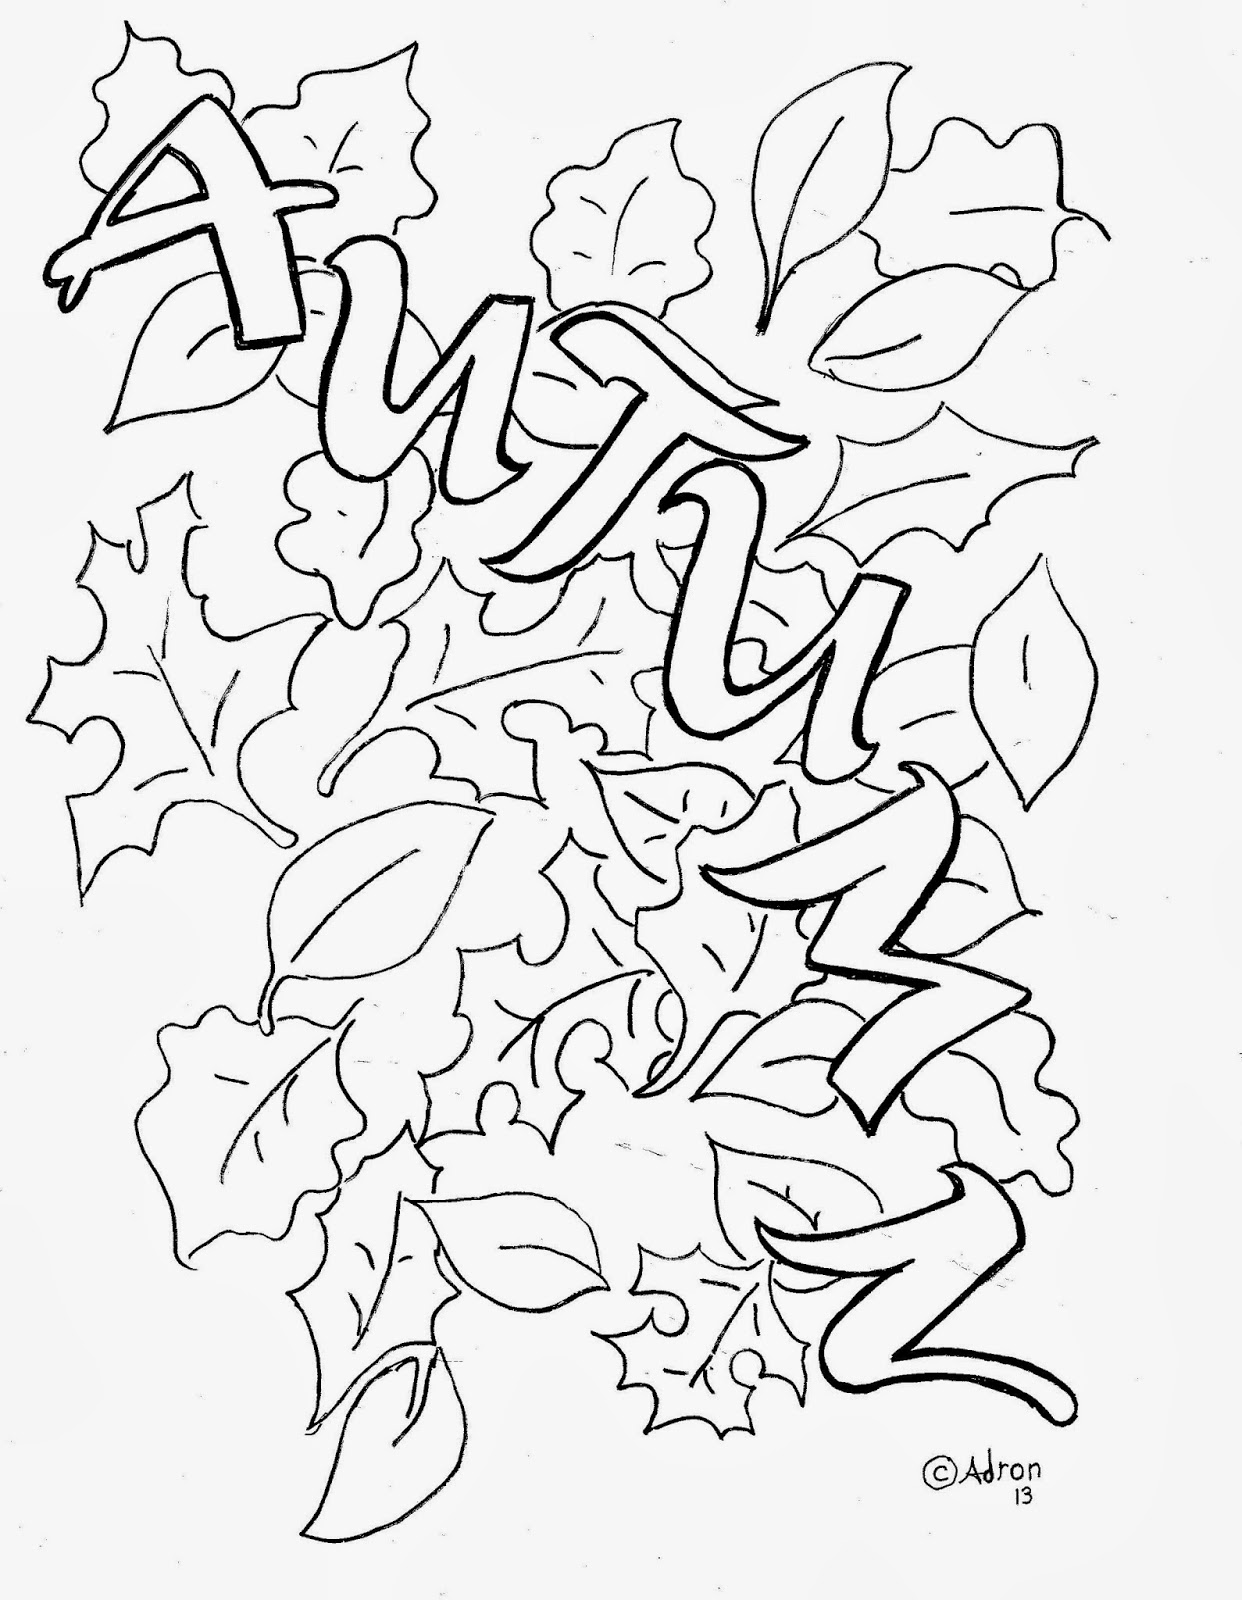 autumn leaves coloring pages autumn leaf to the ground coloring page download print leaves autumn pages coloring